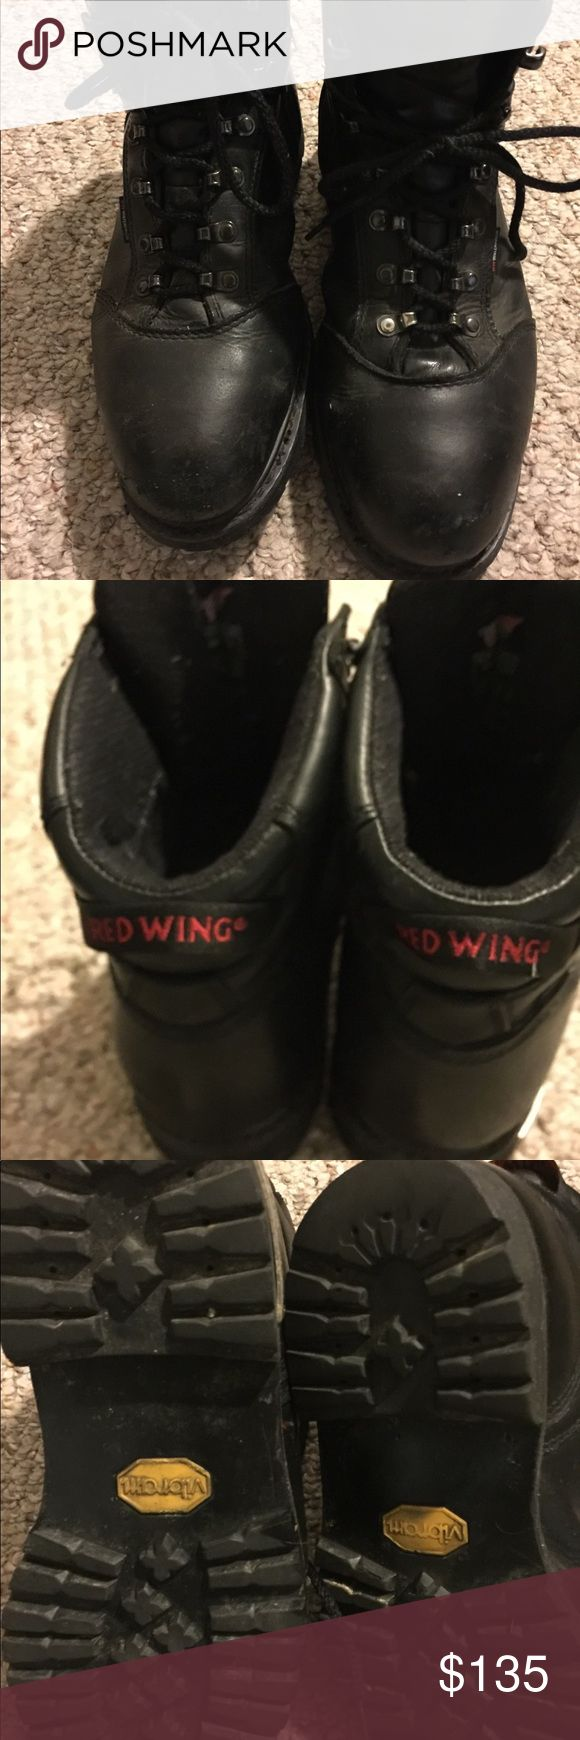 """Men's Truwelt 6"""" Boot Red Wing Steel Toe EUC- Men's Red Wing Truwelt 6"""" Boots item#971; Steel Toe, electrical hazard; and waterproof. Made of Black leathe. Construction: Goodyear welt. Insole Texon. Outsole: Vibram Lug TC-4Plus. Shank is non Metallic, Slip resistant, Oil, gas resistant, Abrasion resistant,heat resistant. This boots are in great condition, see Pics some abrasions to the leather from normal construction wear, but barely worn. Red Wing Shoes Shoes Boots"""